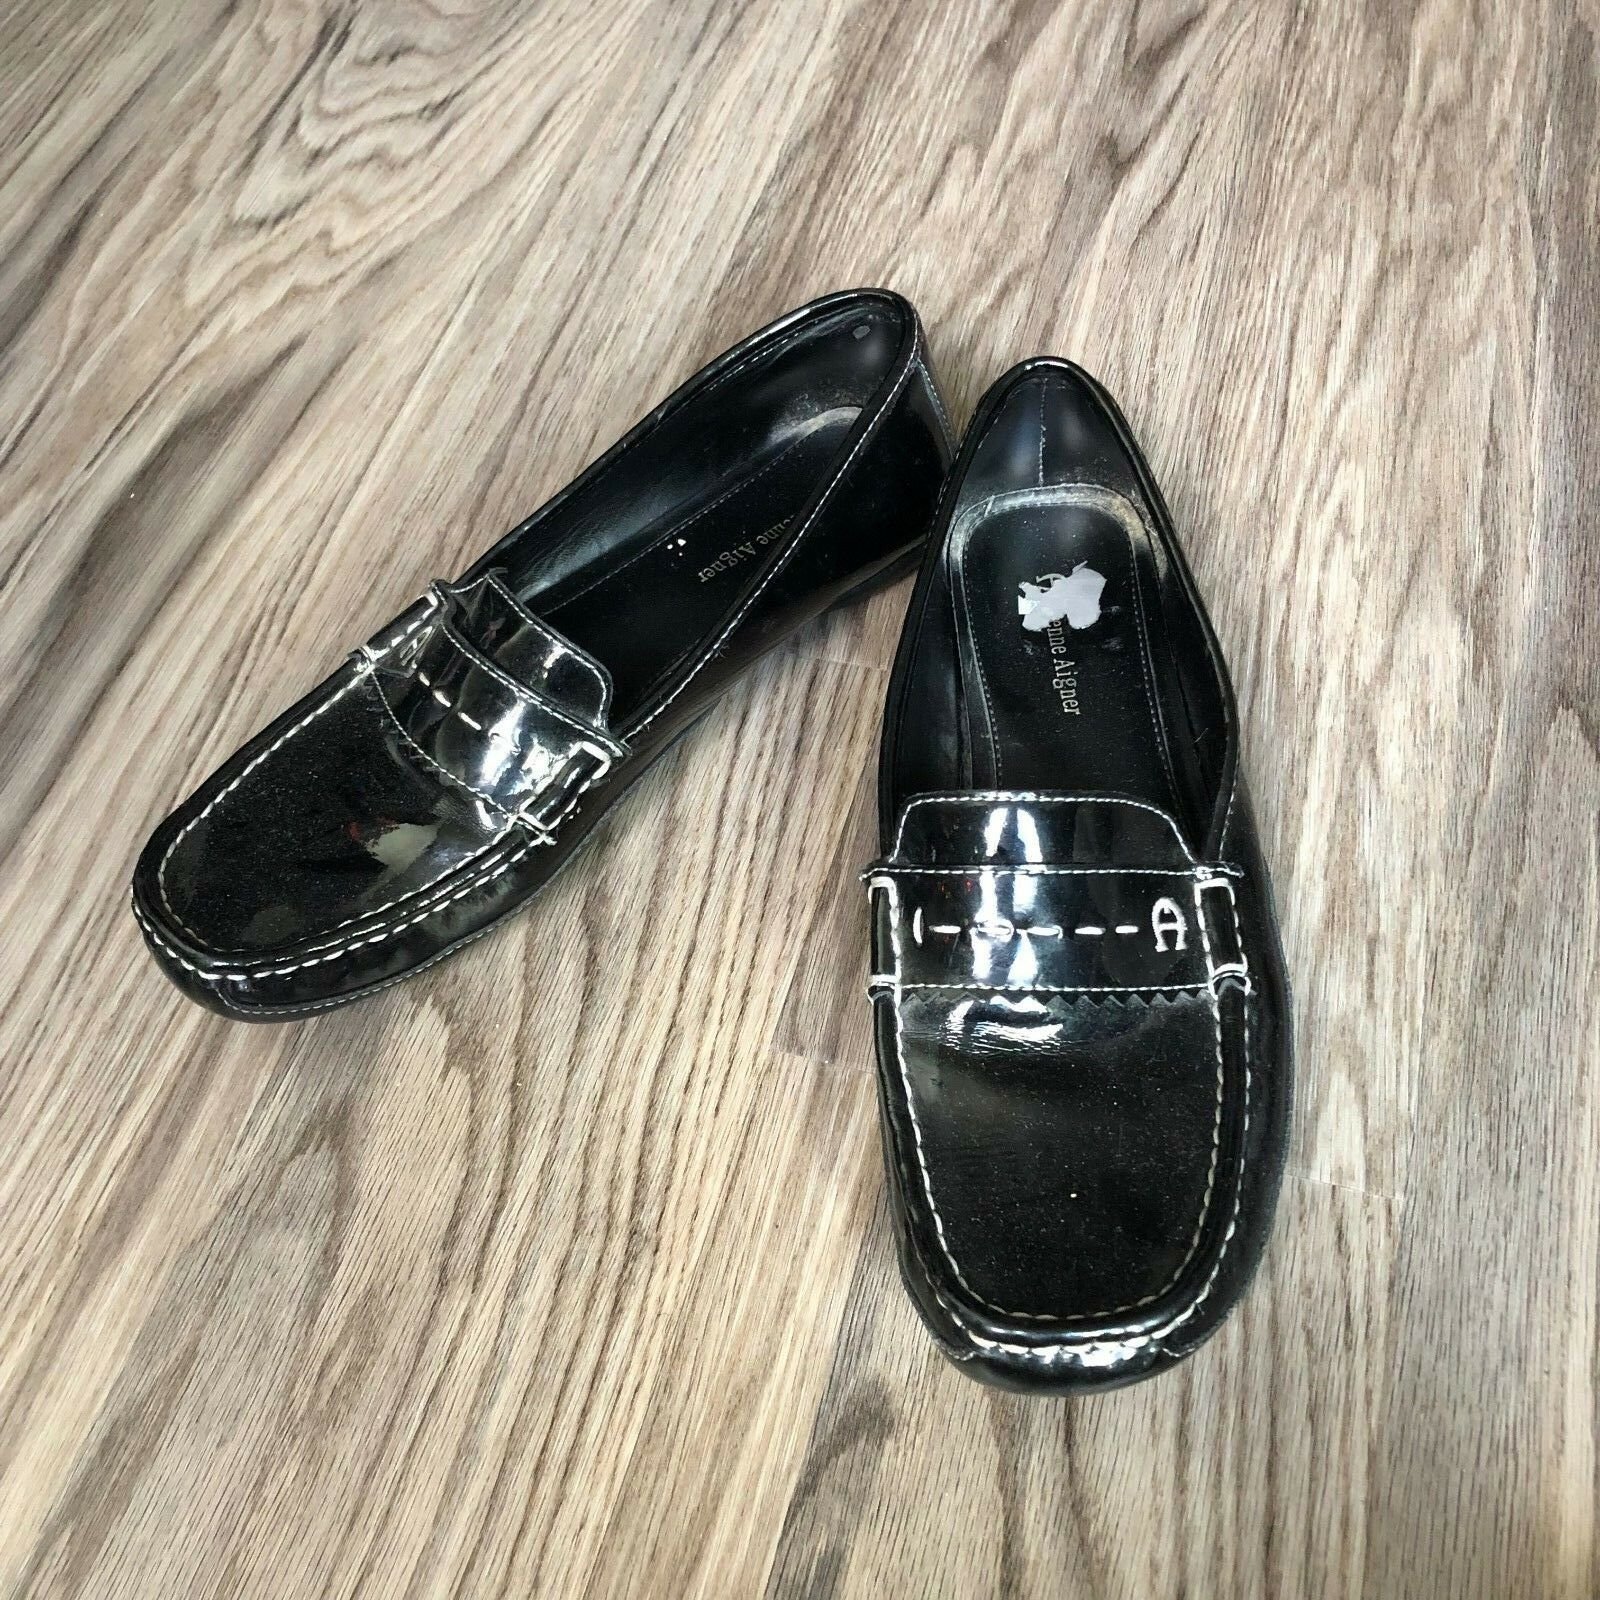 ETIENNE AIGNER Townsend Black Leather Flats Loafer shoes Womens Size 9.5M Work